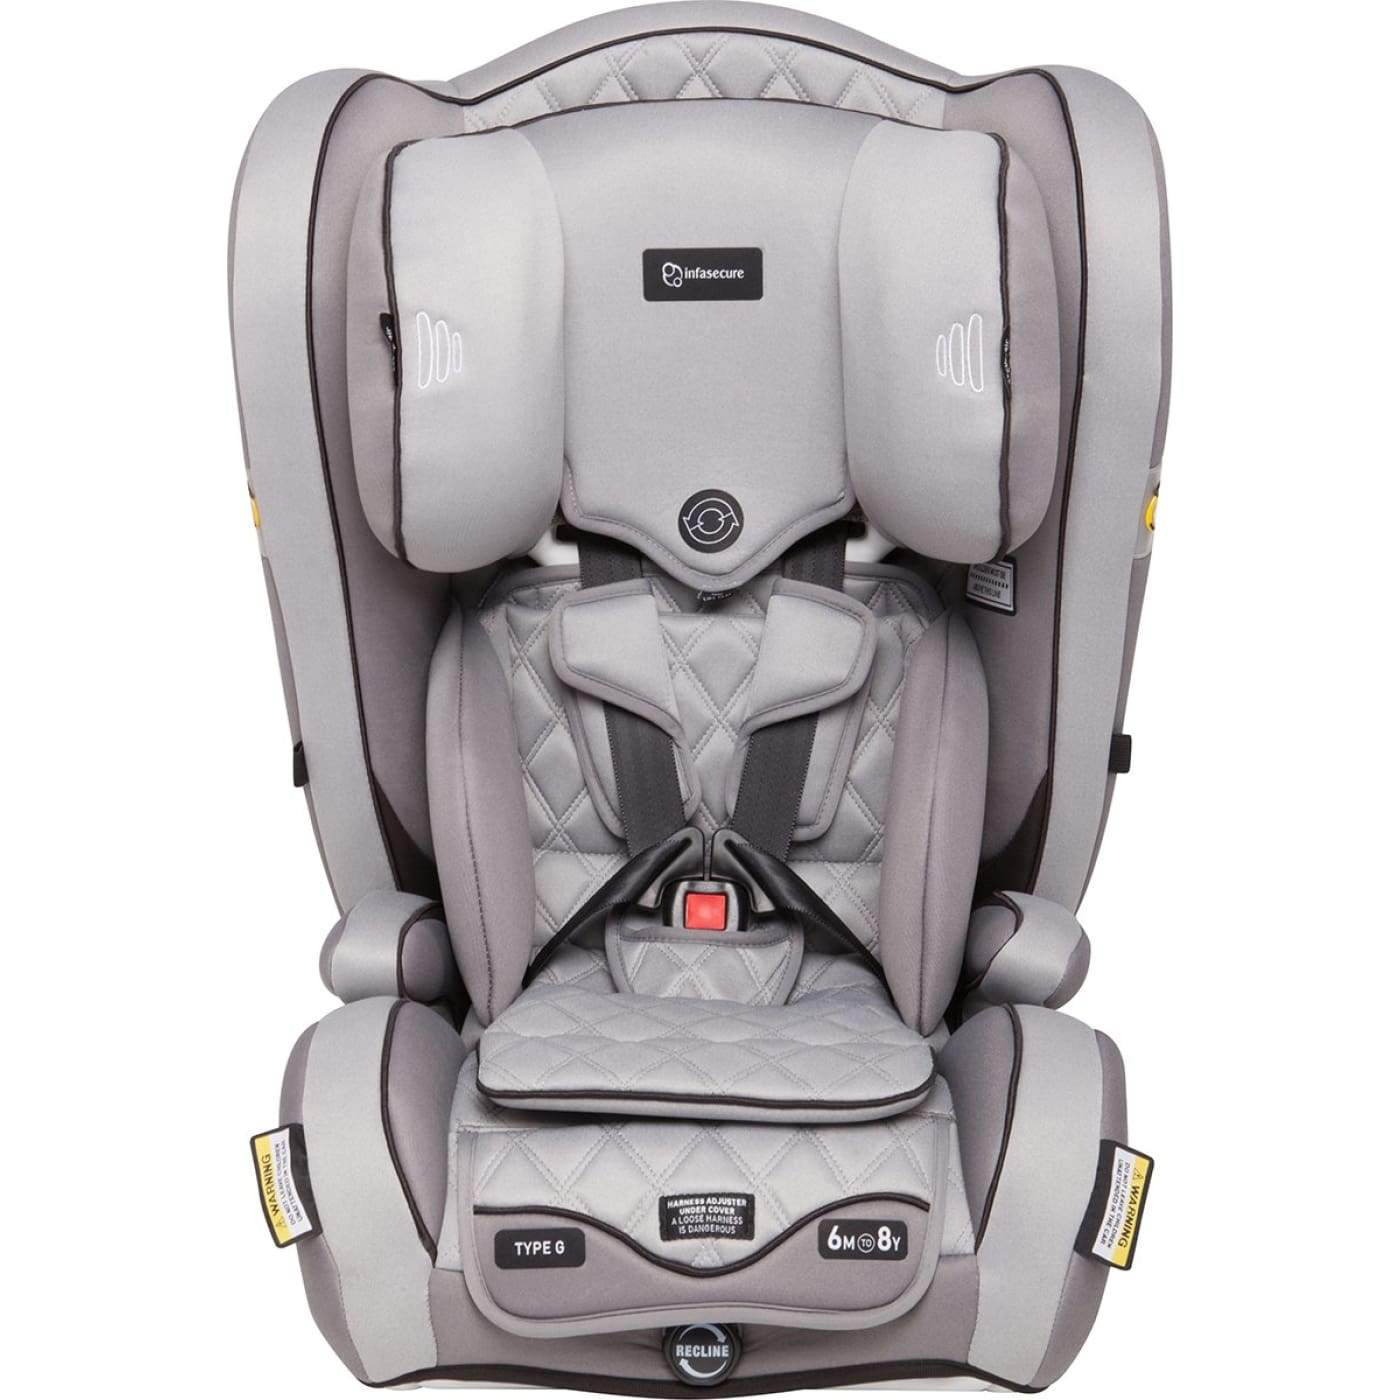 InfaSecure Accomplish Premium Harnessed Booster 6M-8YR - Day - CAR SEATS - HARNESSED BOOSTERS (6M-8YR)